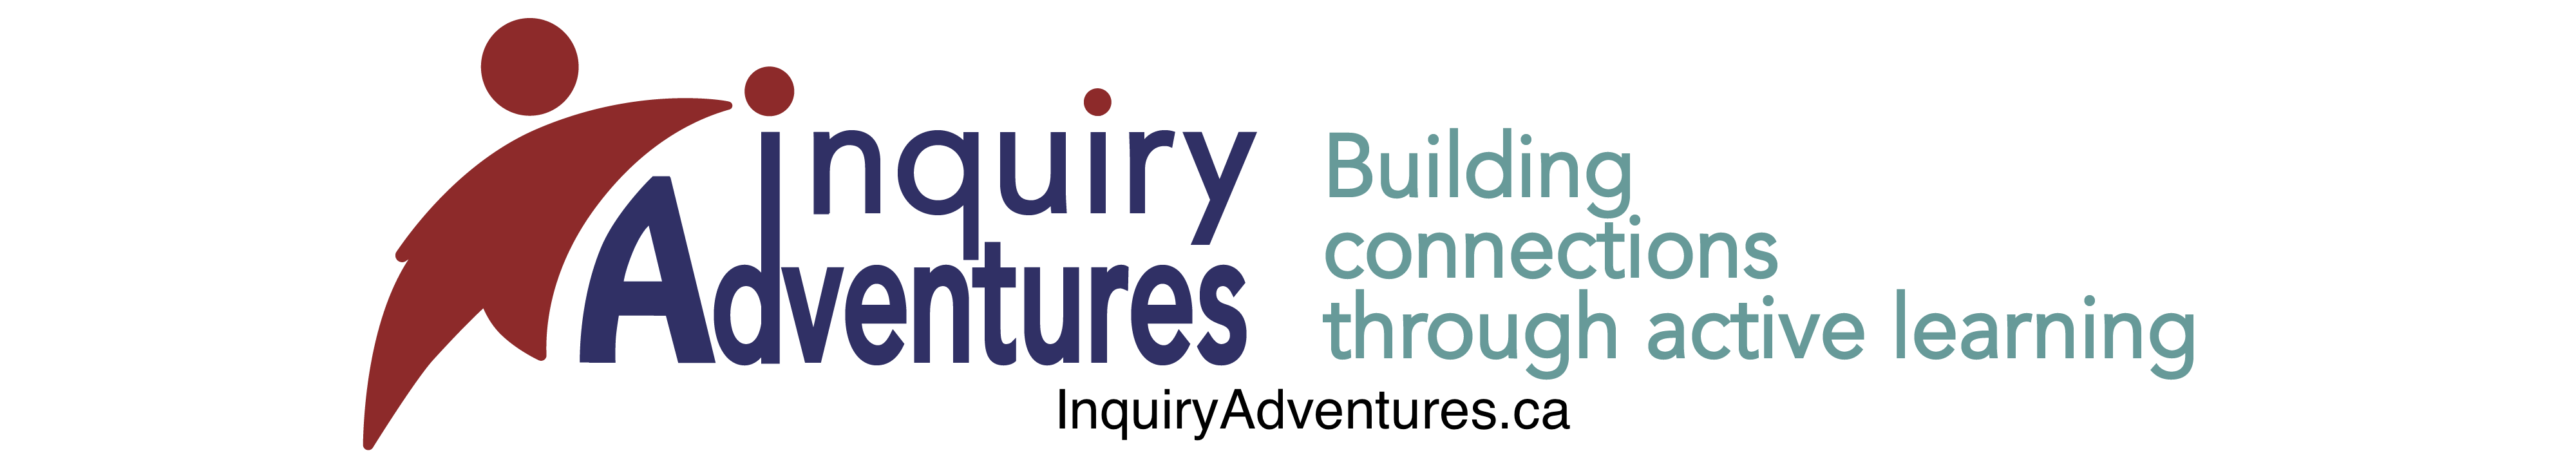 Inquiry Adventures - Social Emotional & Experiential Learning Tools: Thumballs, ULead Cards, Books, Pro-D Workshops, and more